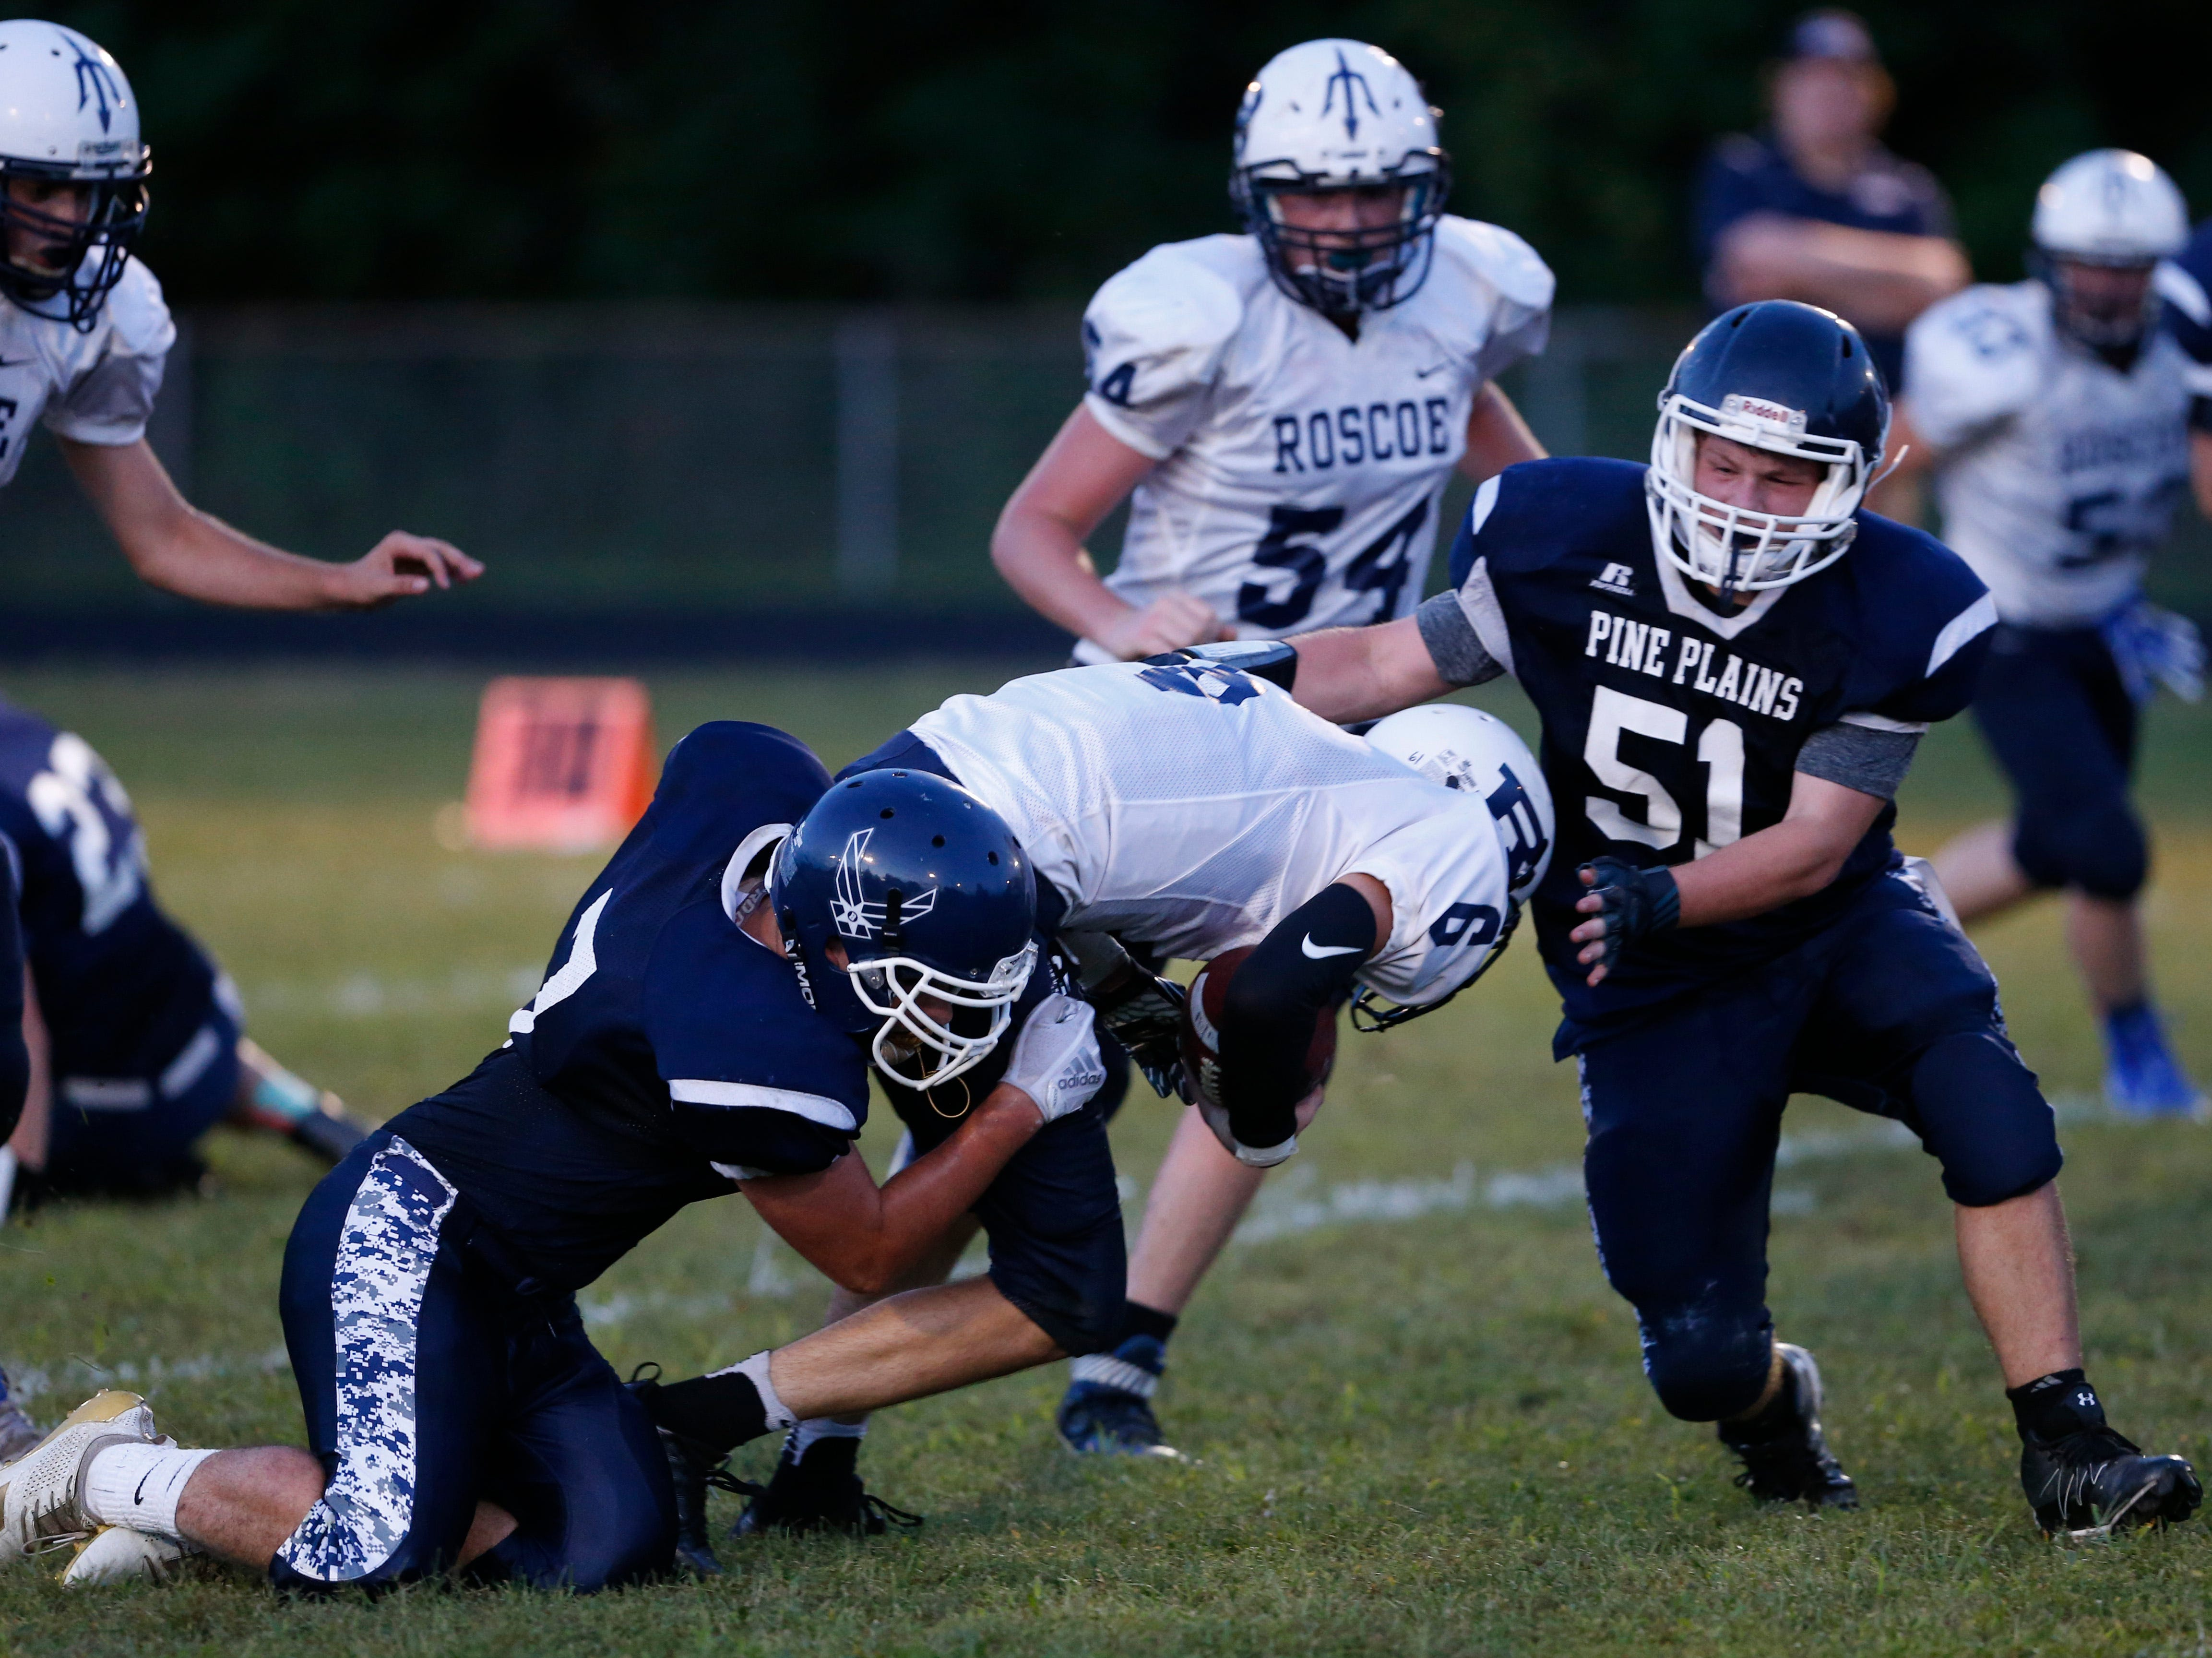 Roscoe's Erick Hill attempts to break free from Pine Plains', from left, Evan Proper and Bryce Stracher during Friday's game at Stissing Mountain High School on September 7, 2018.